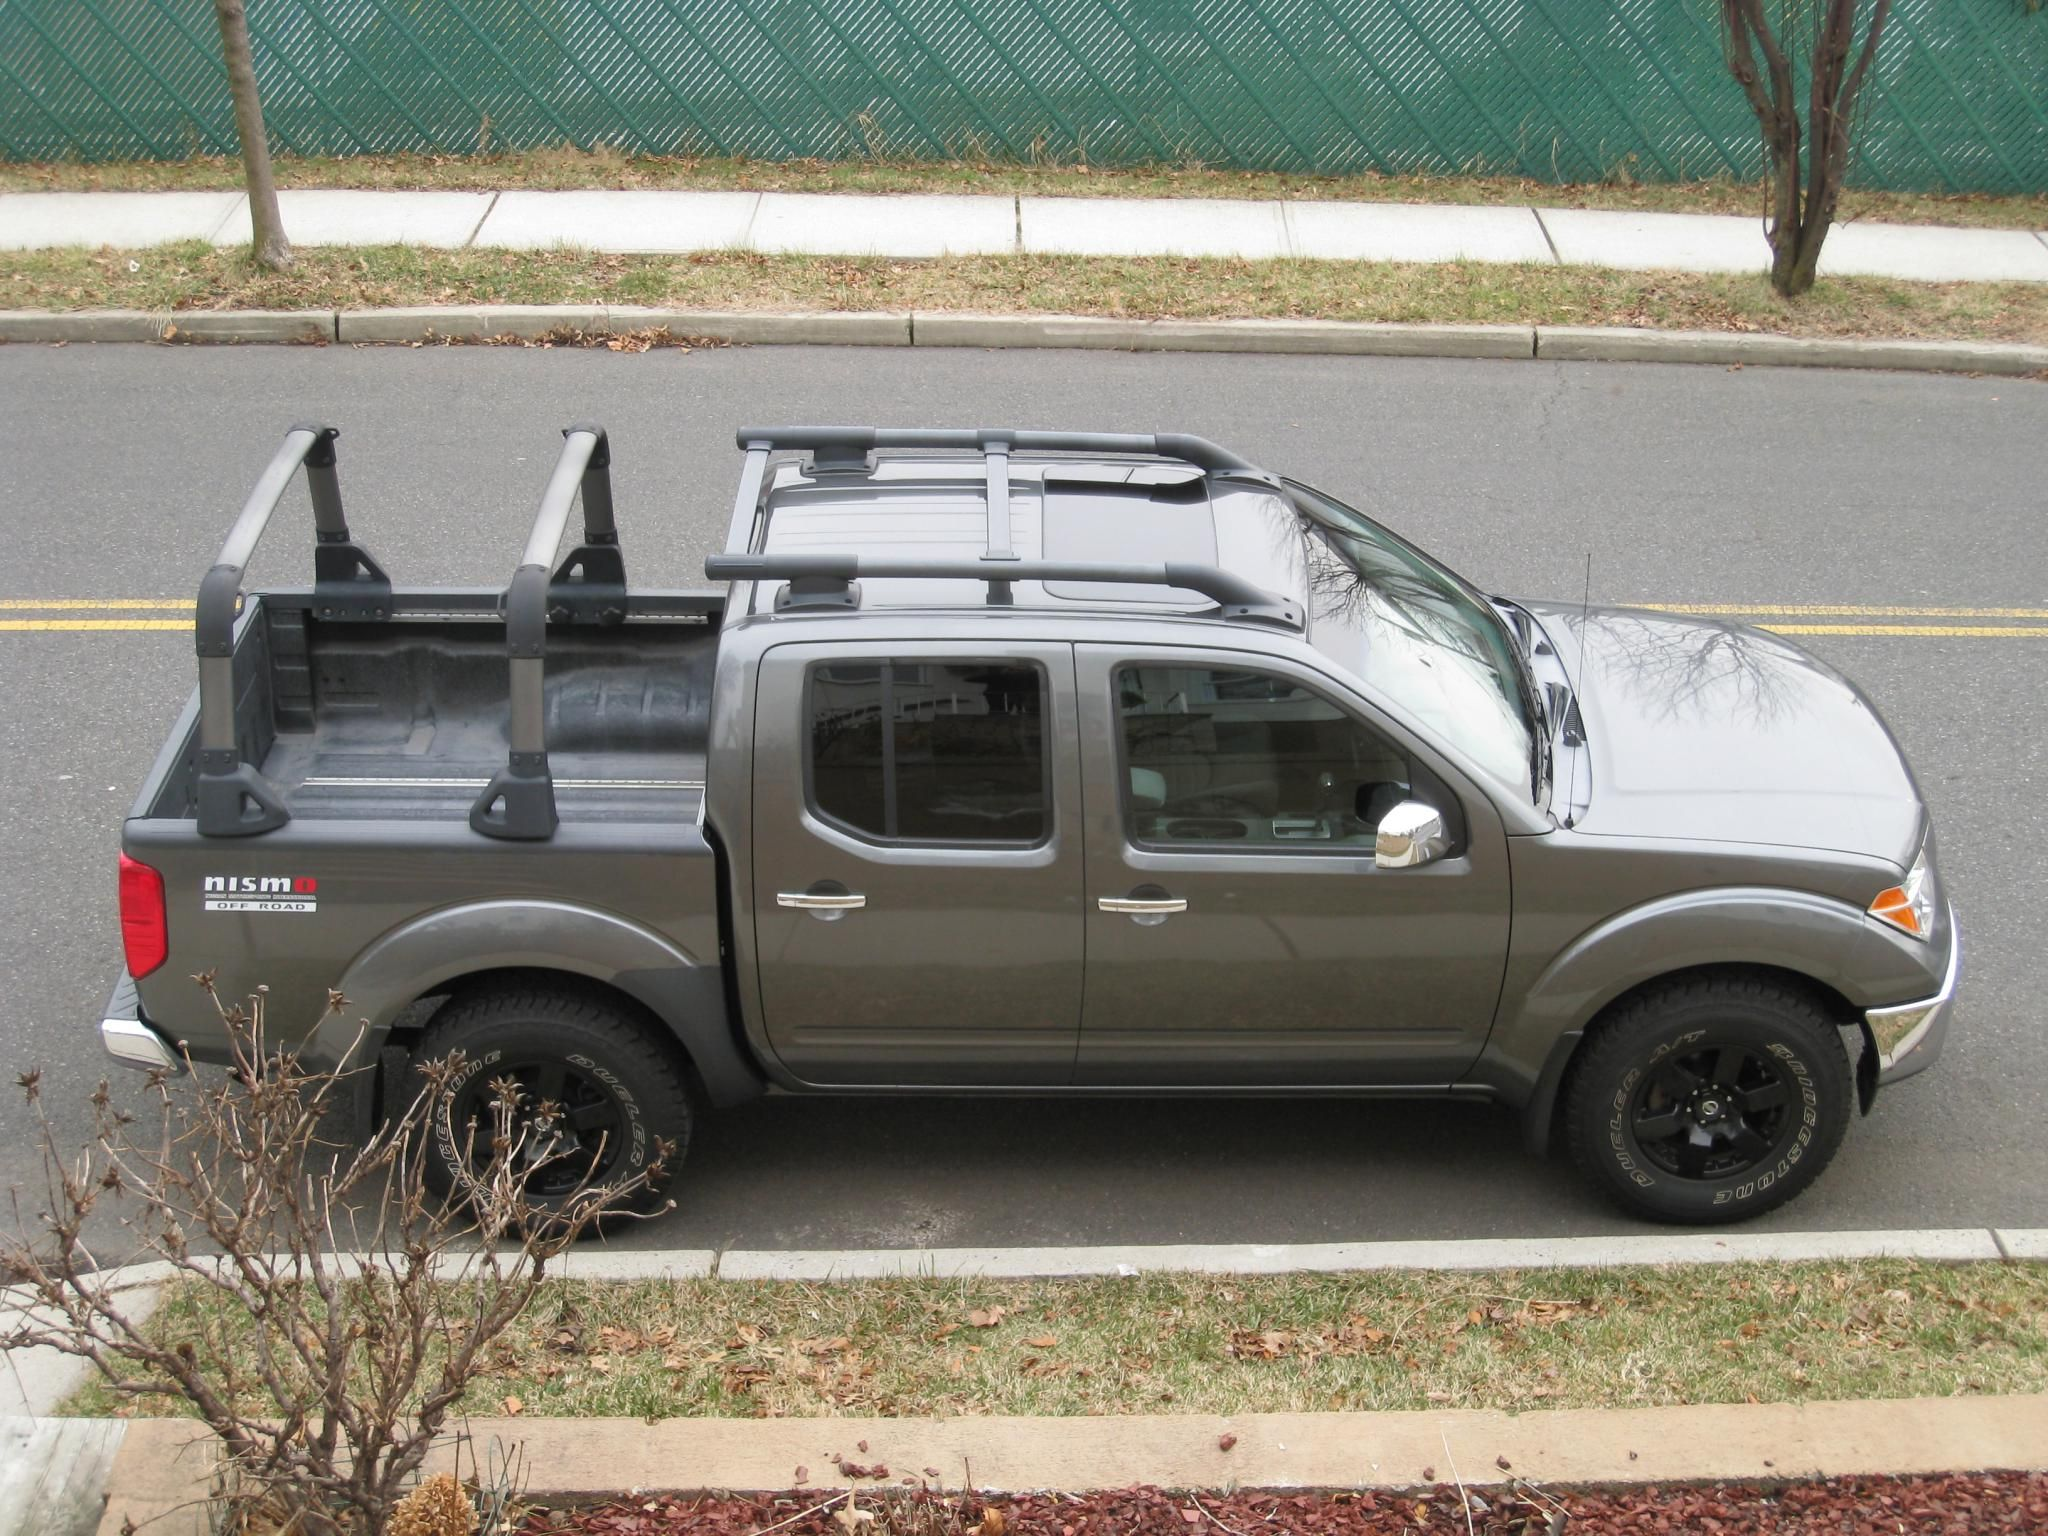 medium resolution of very good looking nissan frontier with bed rack and roof rack